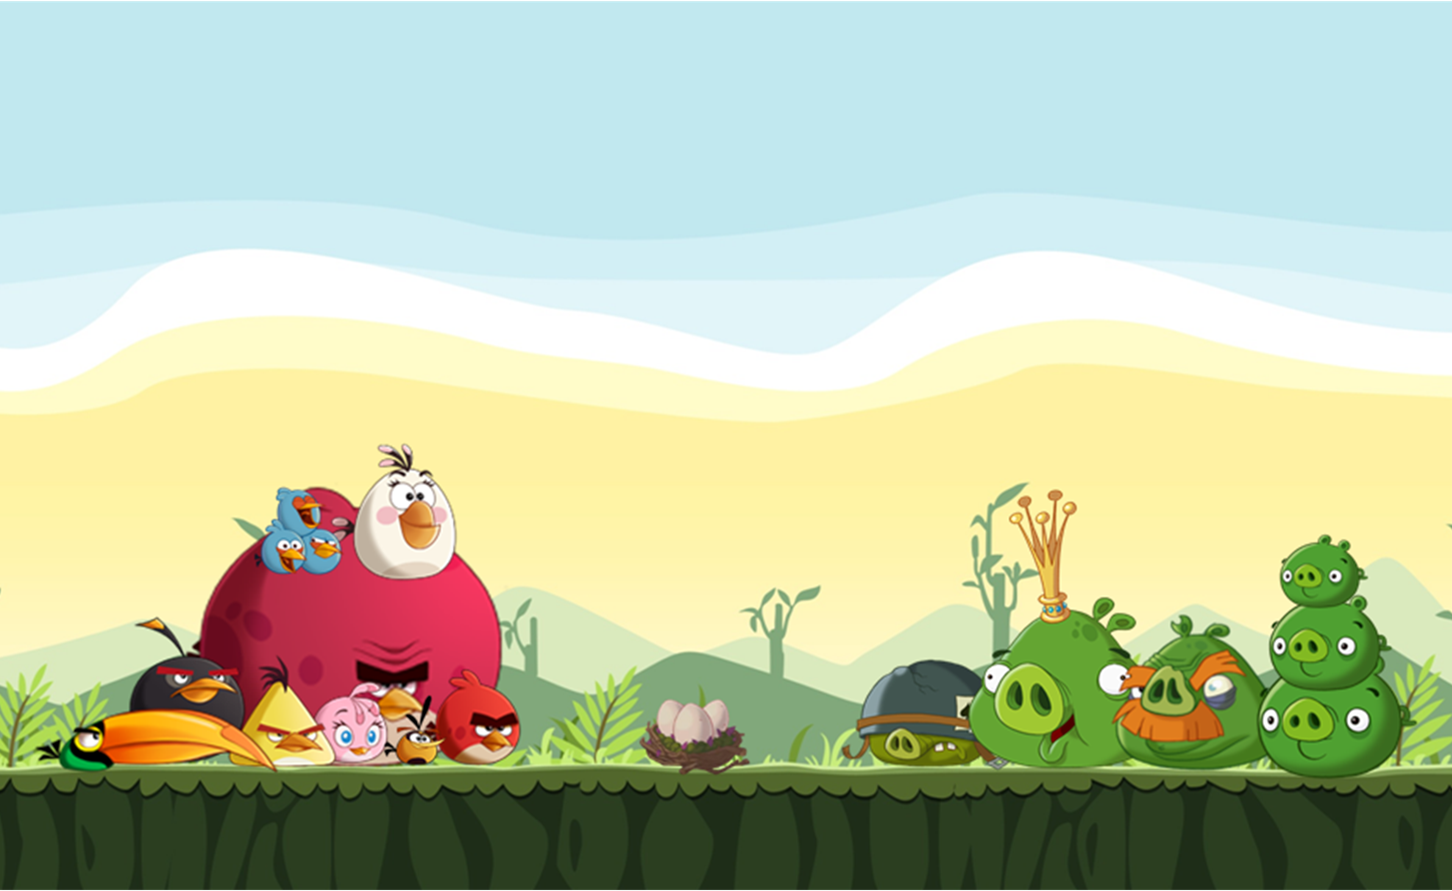 Image - ABW 2015 Main Background Testing png | Angry Birds Wiki